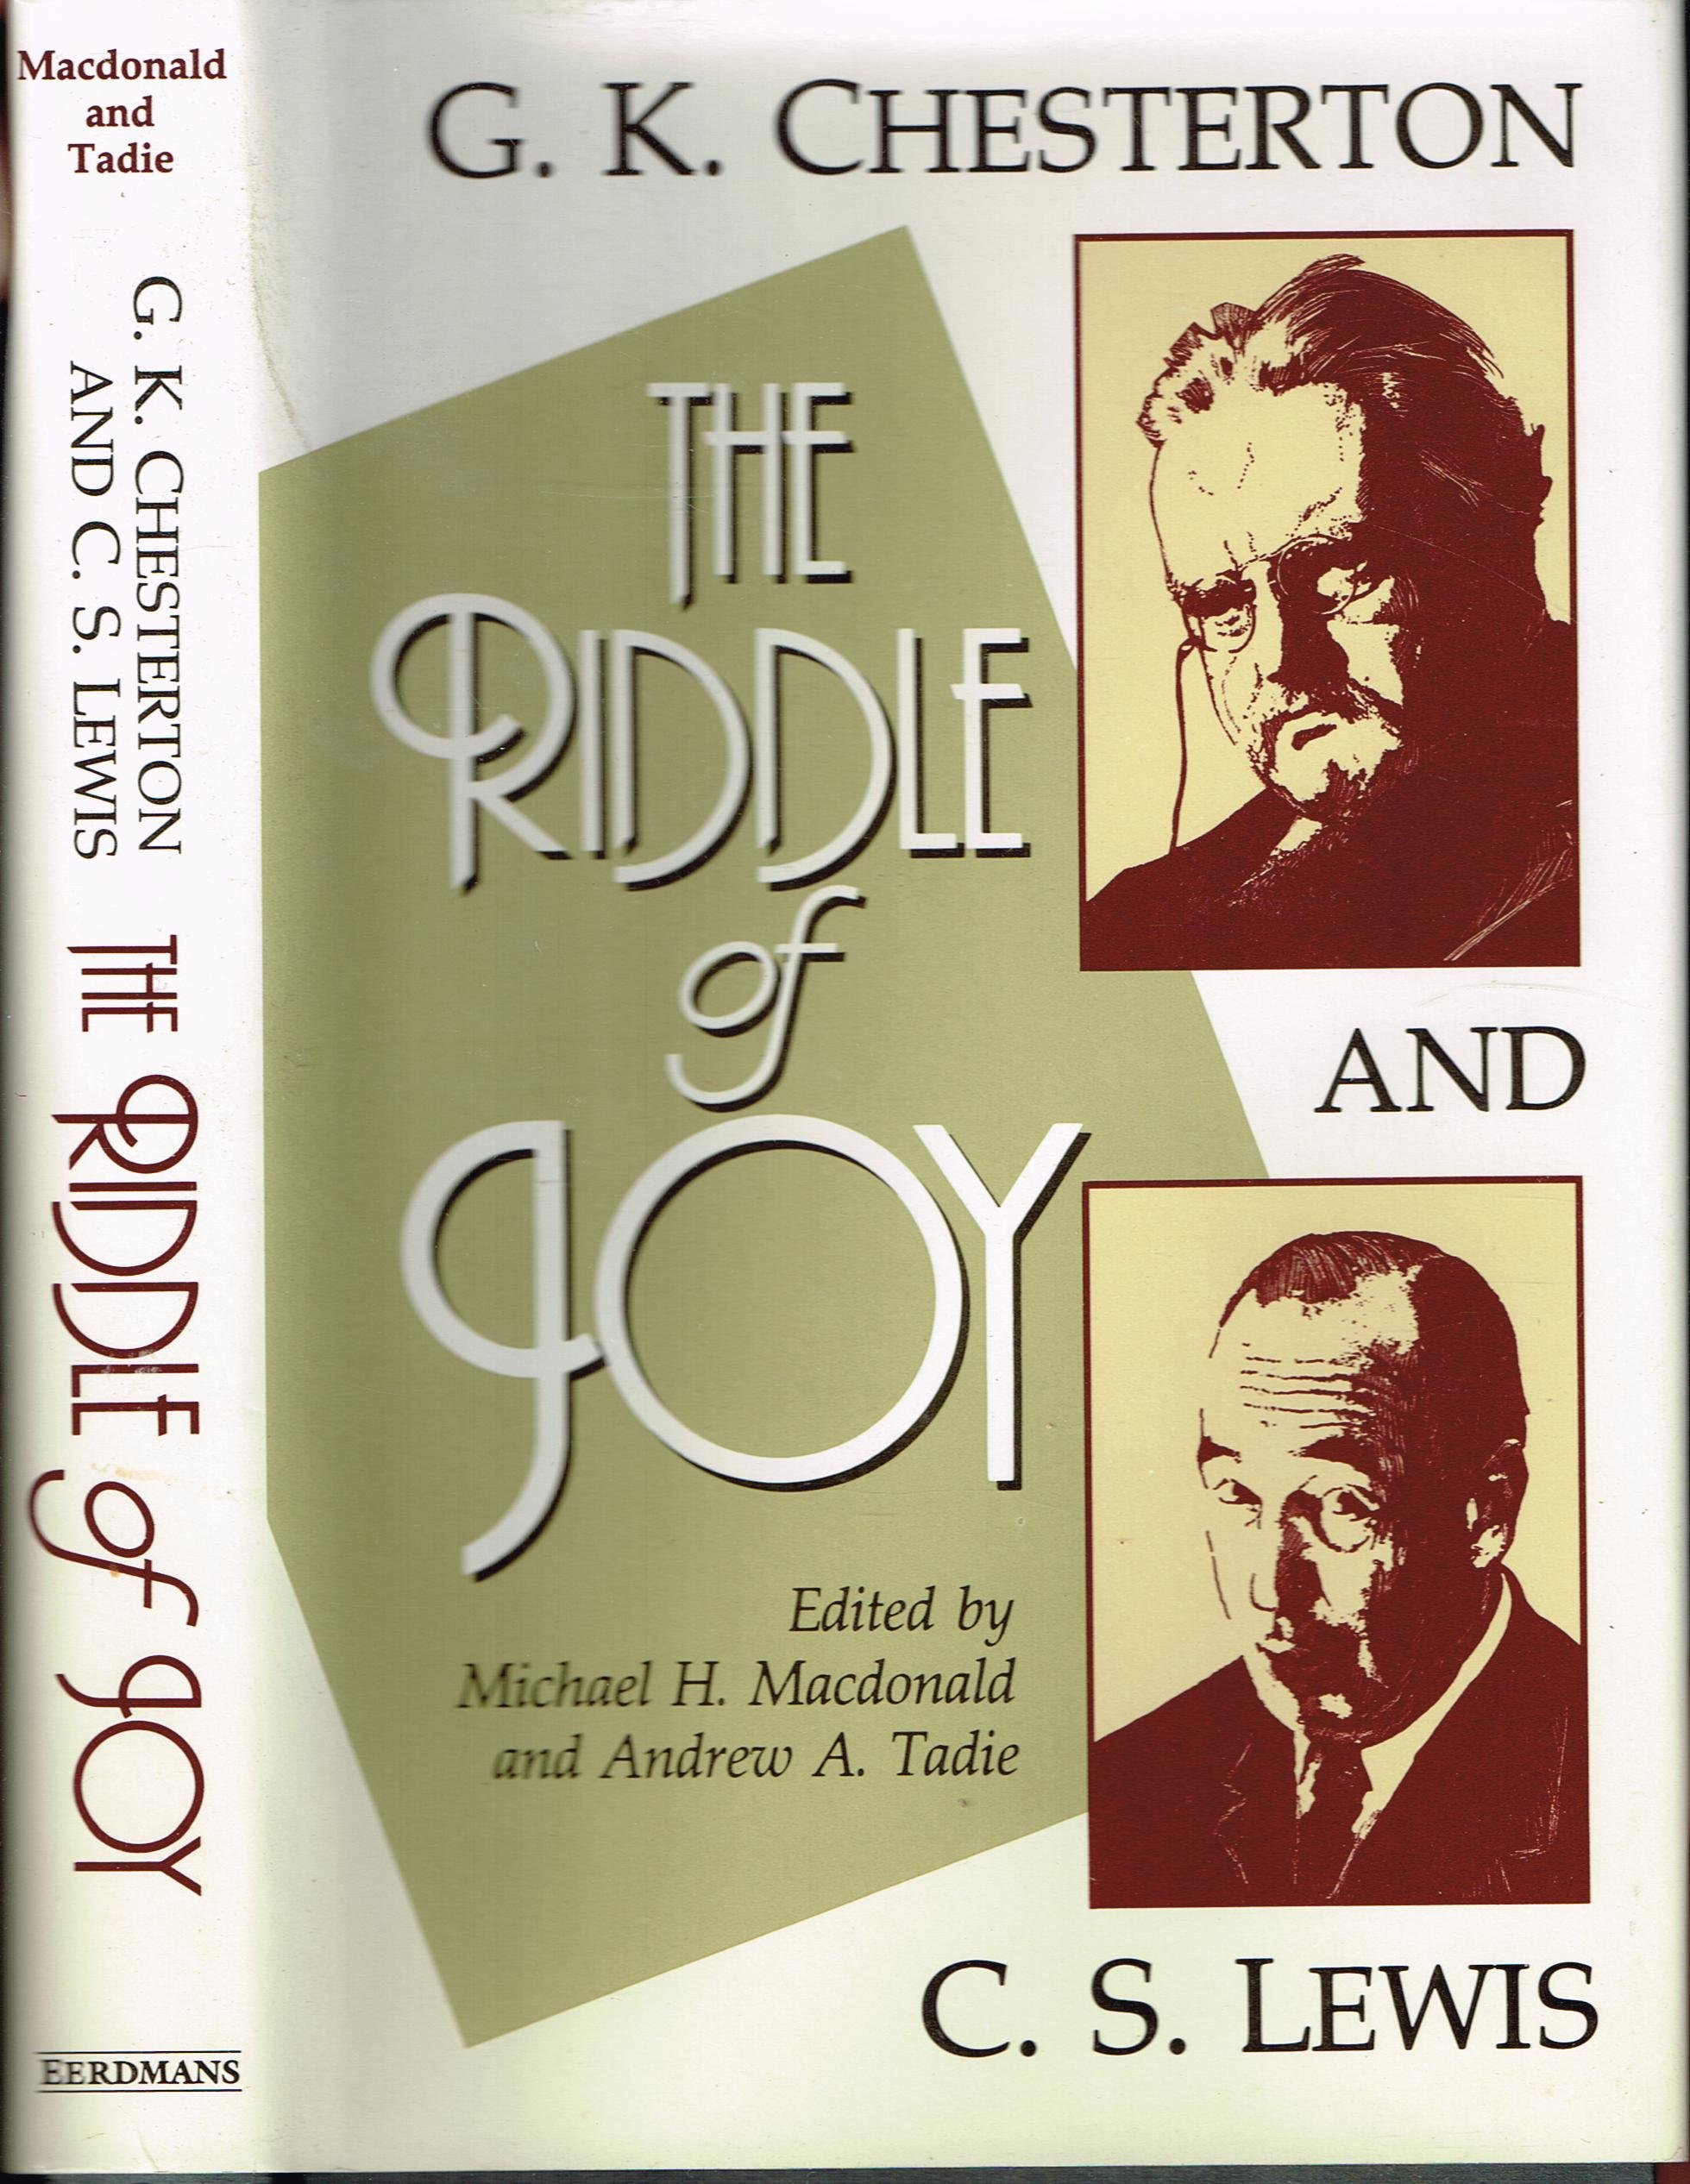 Amazoncom The Riddle Of Joy Gk Chesterton And Cs Lewis